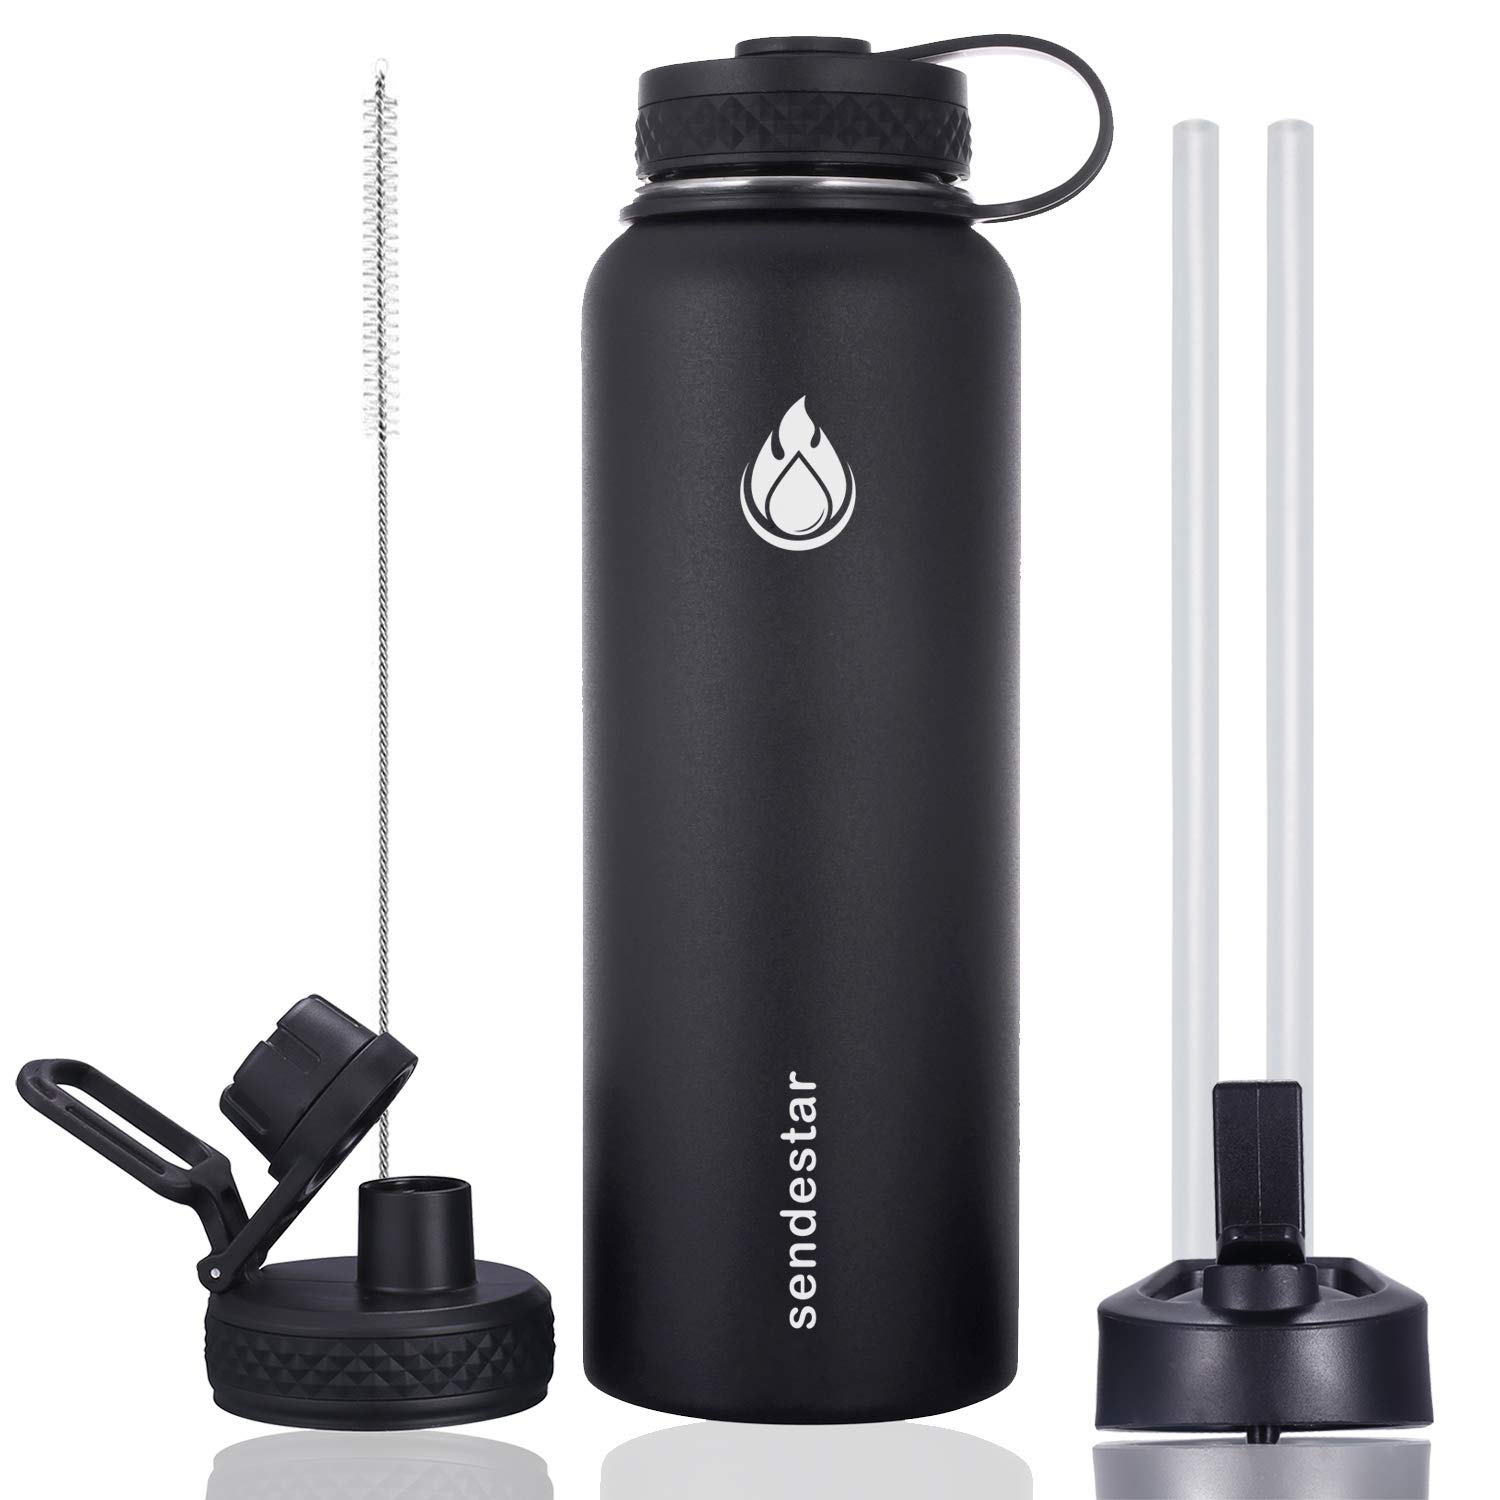 Sendestar 40 oz Double Wall Vacuum Insulated Leak Proof Stainless Steel Sports Water Bottle-Wide Mouth with Straw Lid & Flex Cap & Spout Lid (Black)